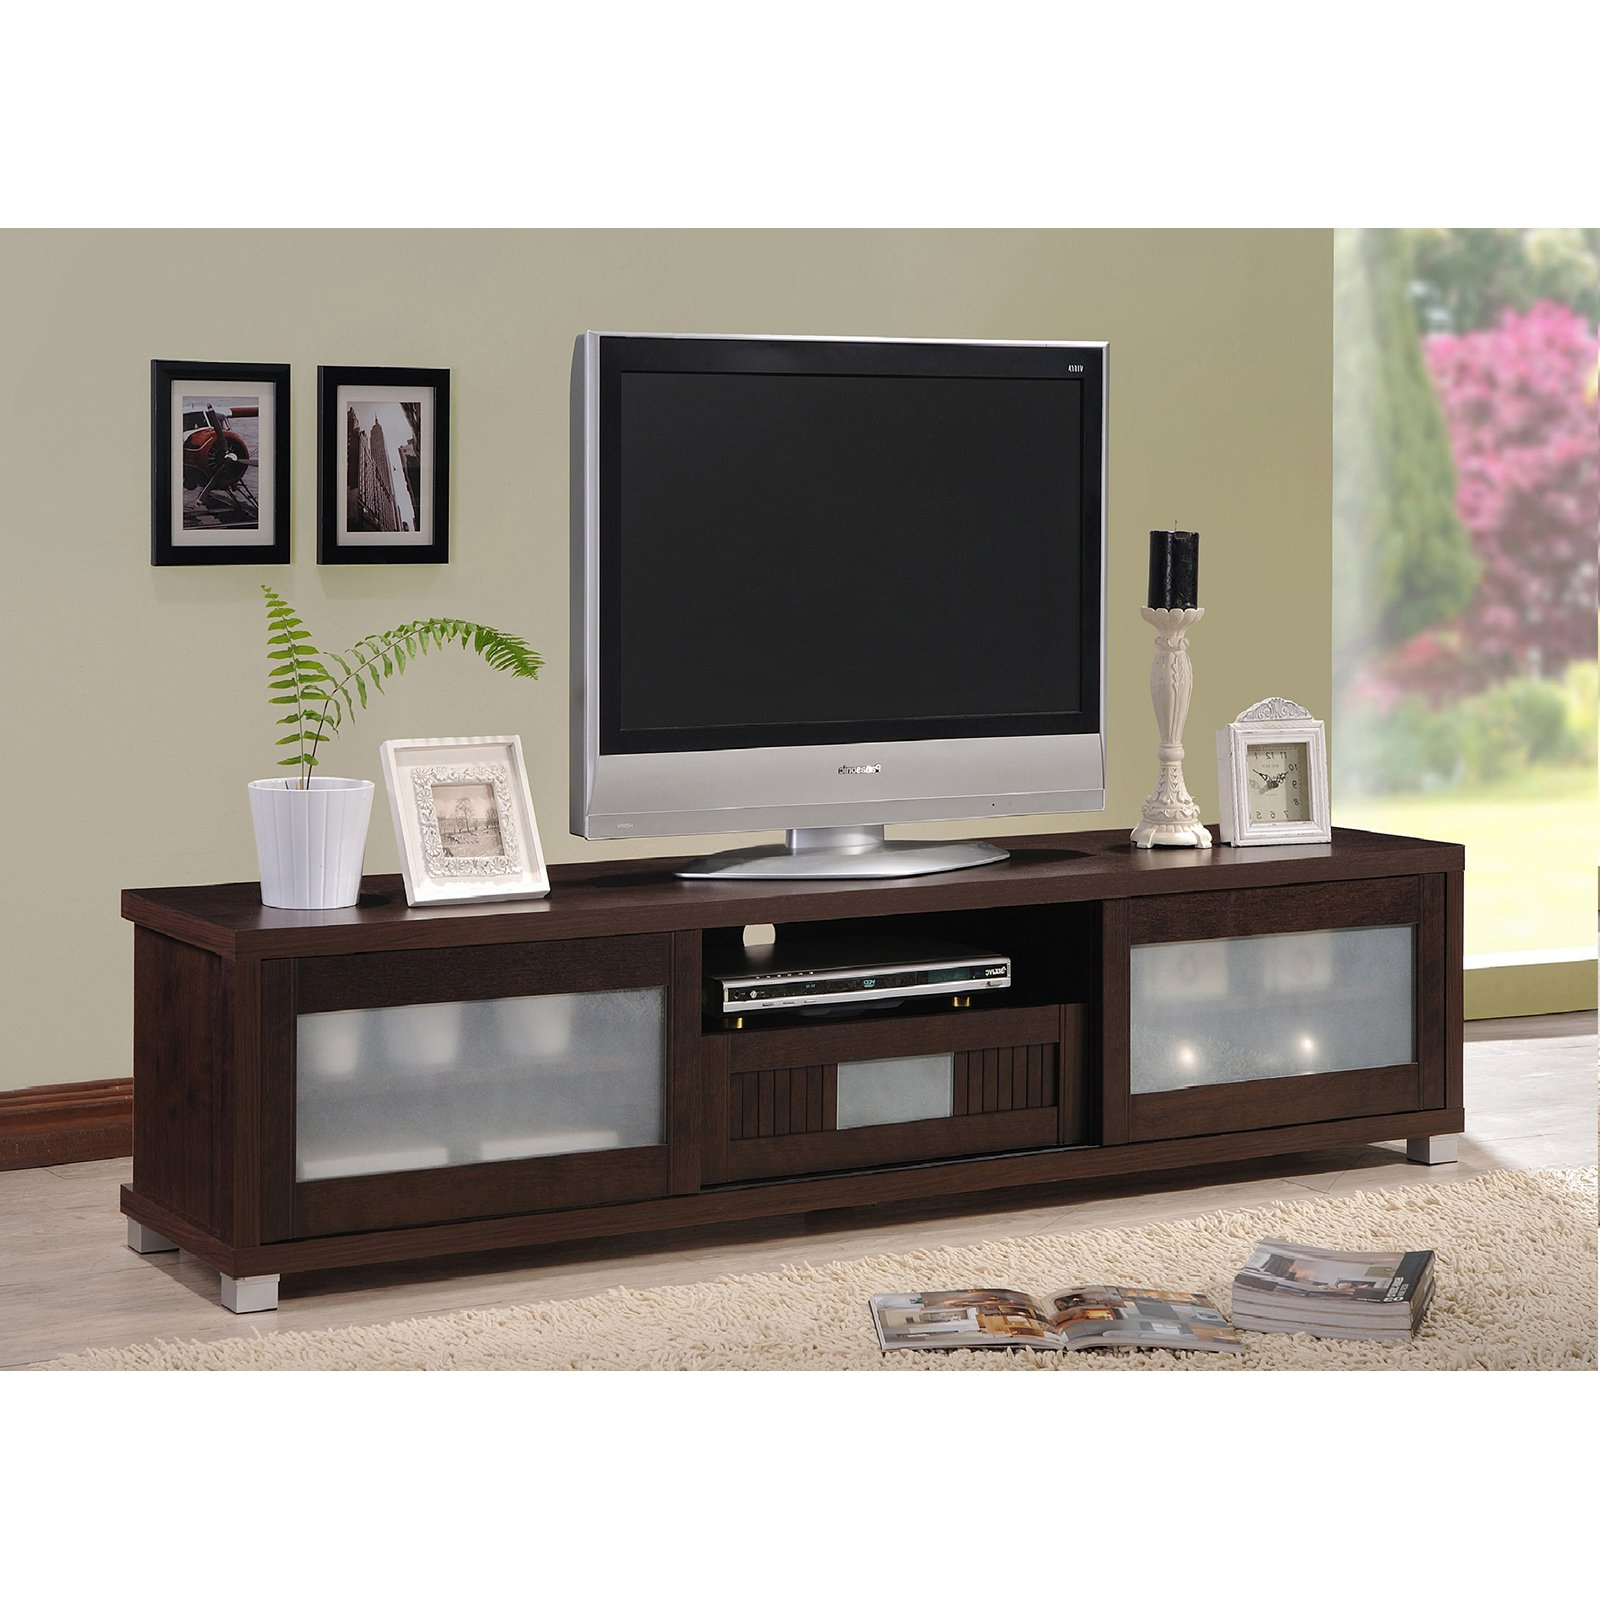 Amazon: Wholesale Interiors Baxton Studio Beasley Tv Cabinet With Regarding Dixon White 58 Inch Tv Stands (View 4 of 20)